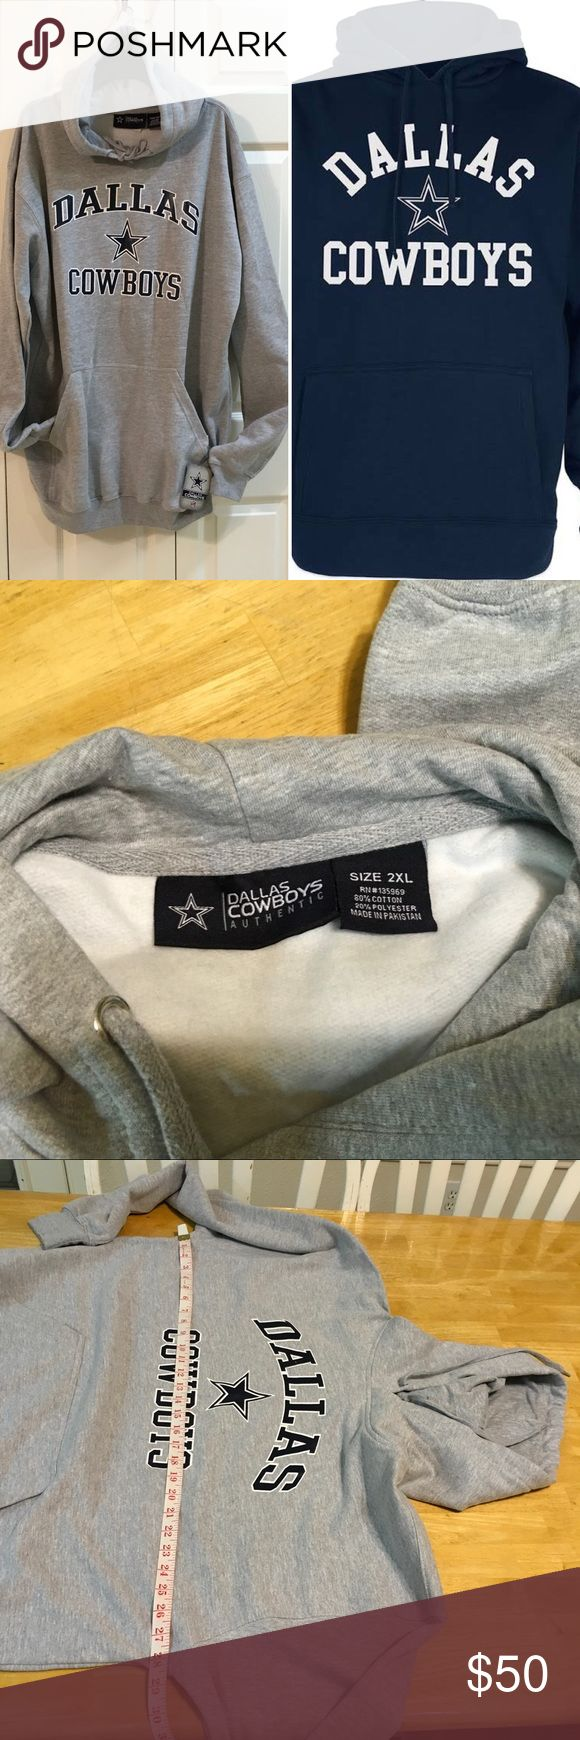 New NFL Dallas cowboy Hoodie sweatshirt SZ 2XL Men's Dallas Cowboys authentic NFL Athletic apparel Branded Heathered Gray Team Lockup Pullover Hoodie Material: 90%Cotton/10%Polyester Size 2XL Front pouch pocket Hood with drawstring Midweight hoodie suitable for moderate temperatures.Fleece lining Rib-knit cuffs and waist hem Screen print graphics/paint scratch as pictured. Little thread pull as pictured.  Check out photos for Measurements then tag sizes. Some photos are model for your…